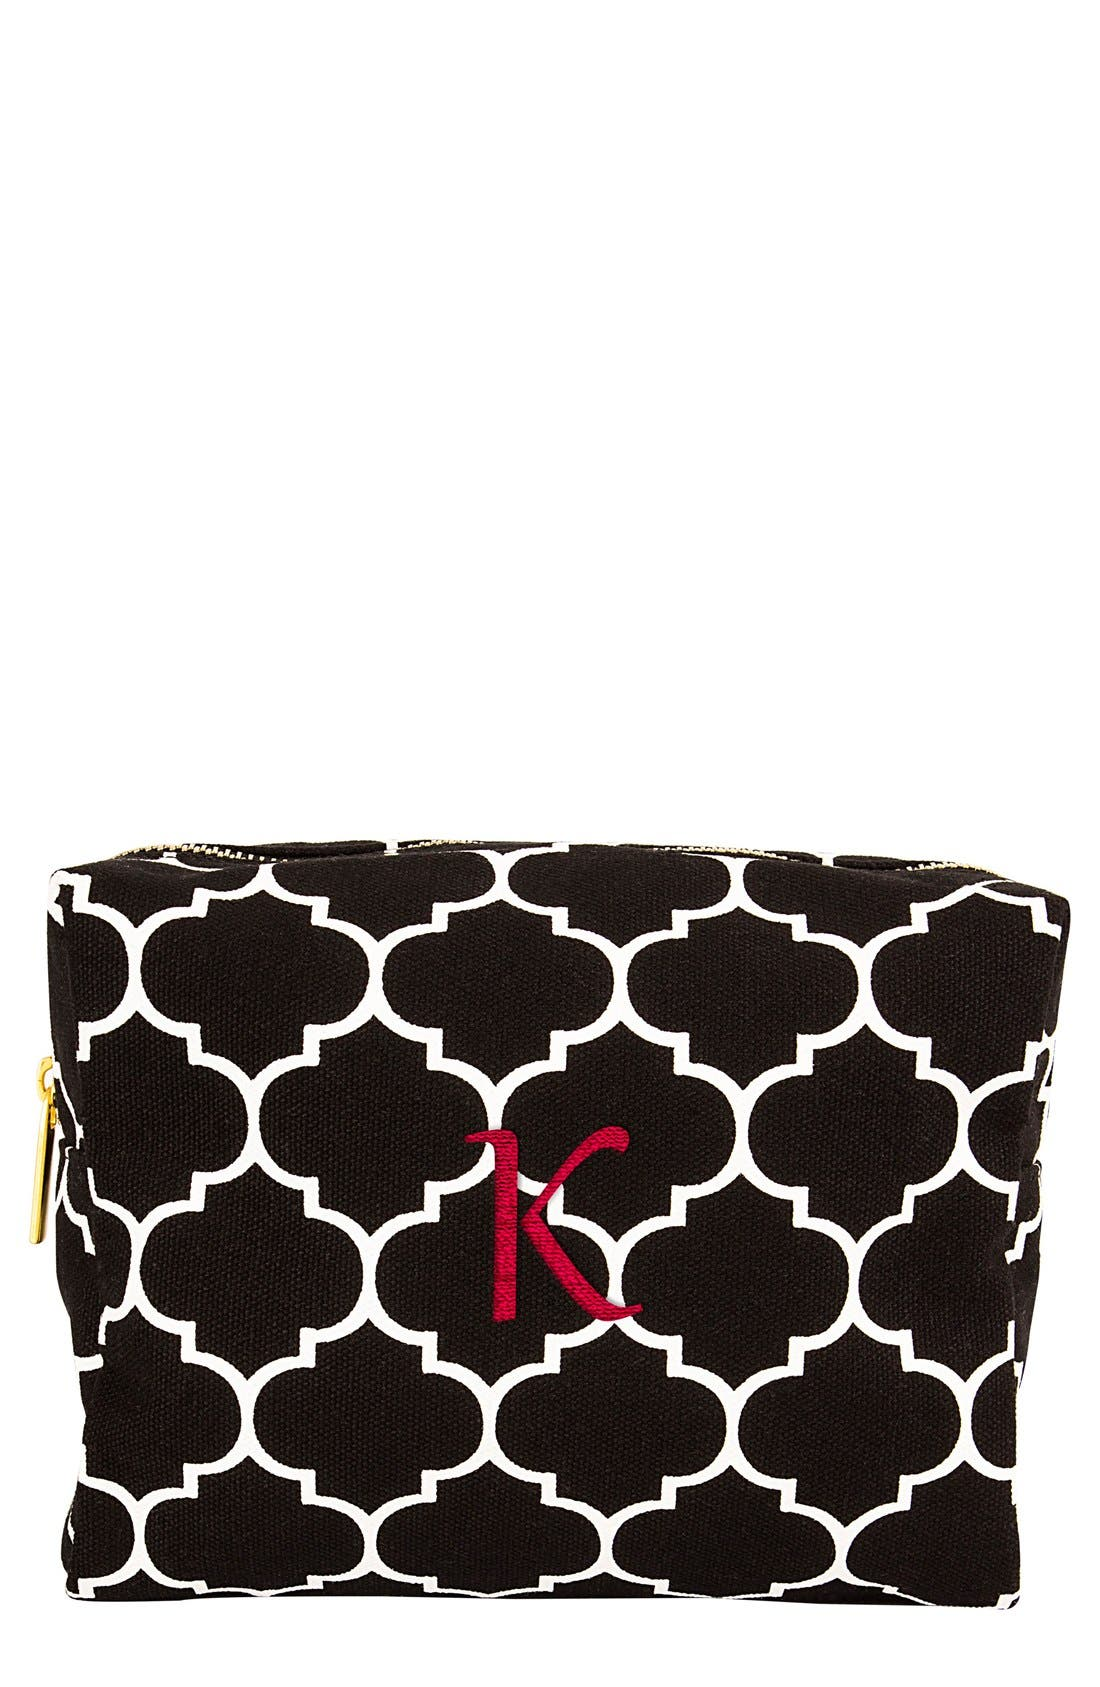 Monogram Cosmetics Bag,                         Main,                         color, Black-K